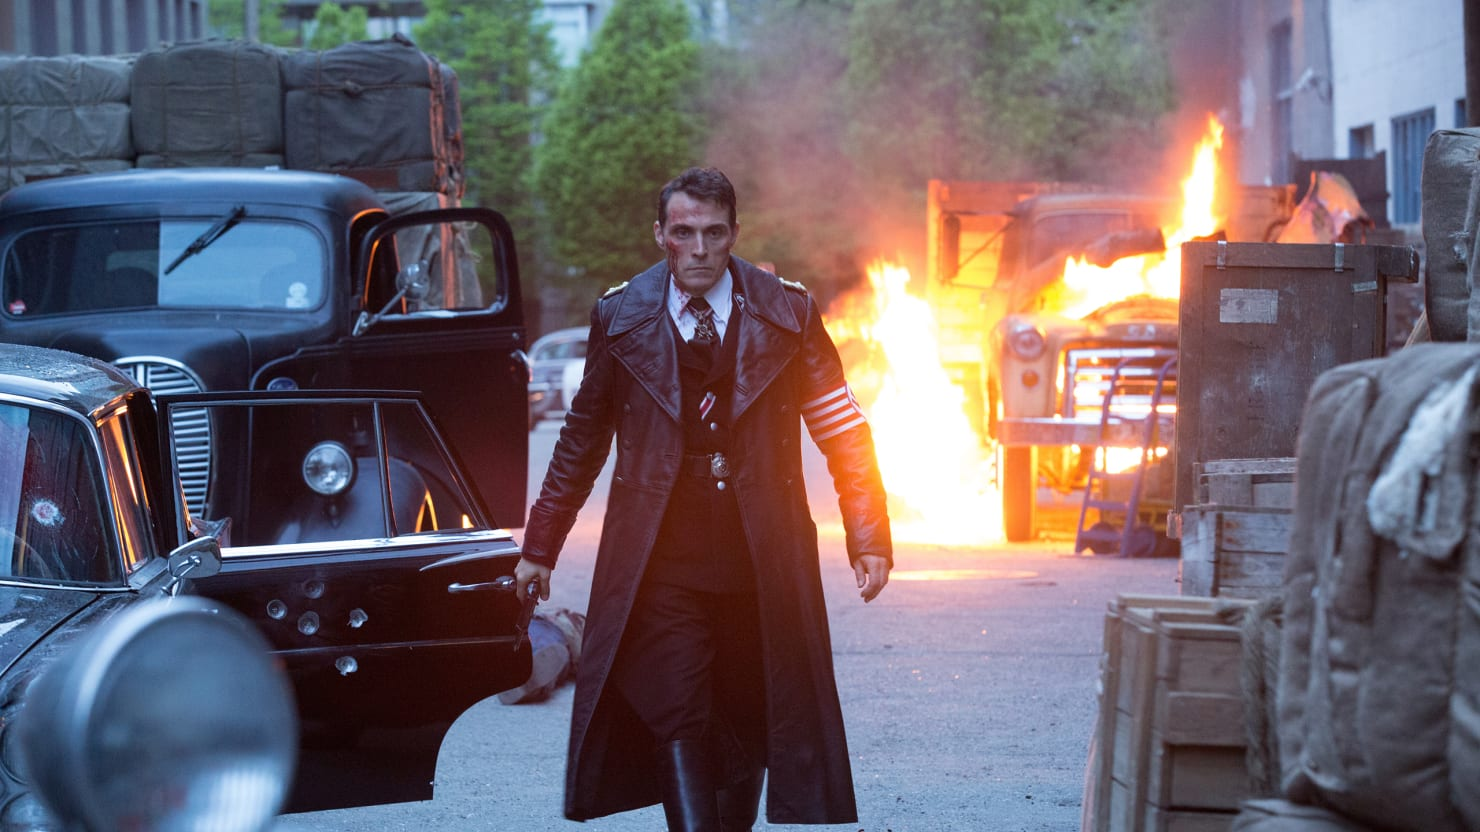 What If the Nazis Won? Inside Amazon's 'The Man in the High Castle'